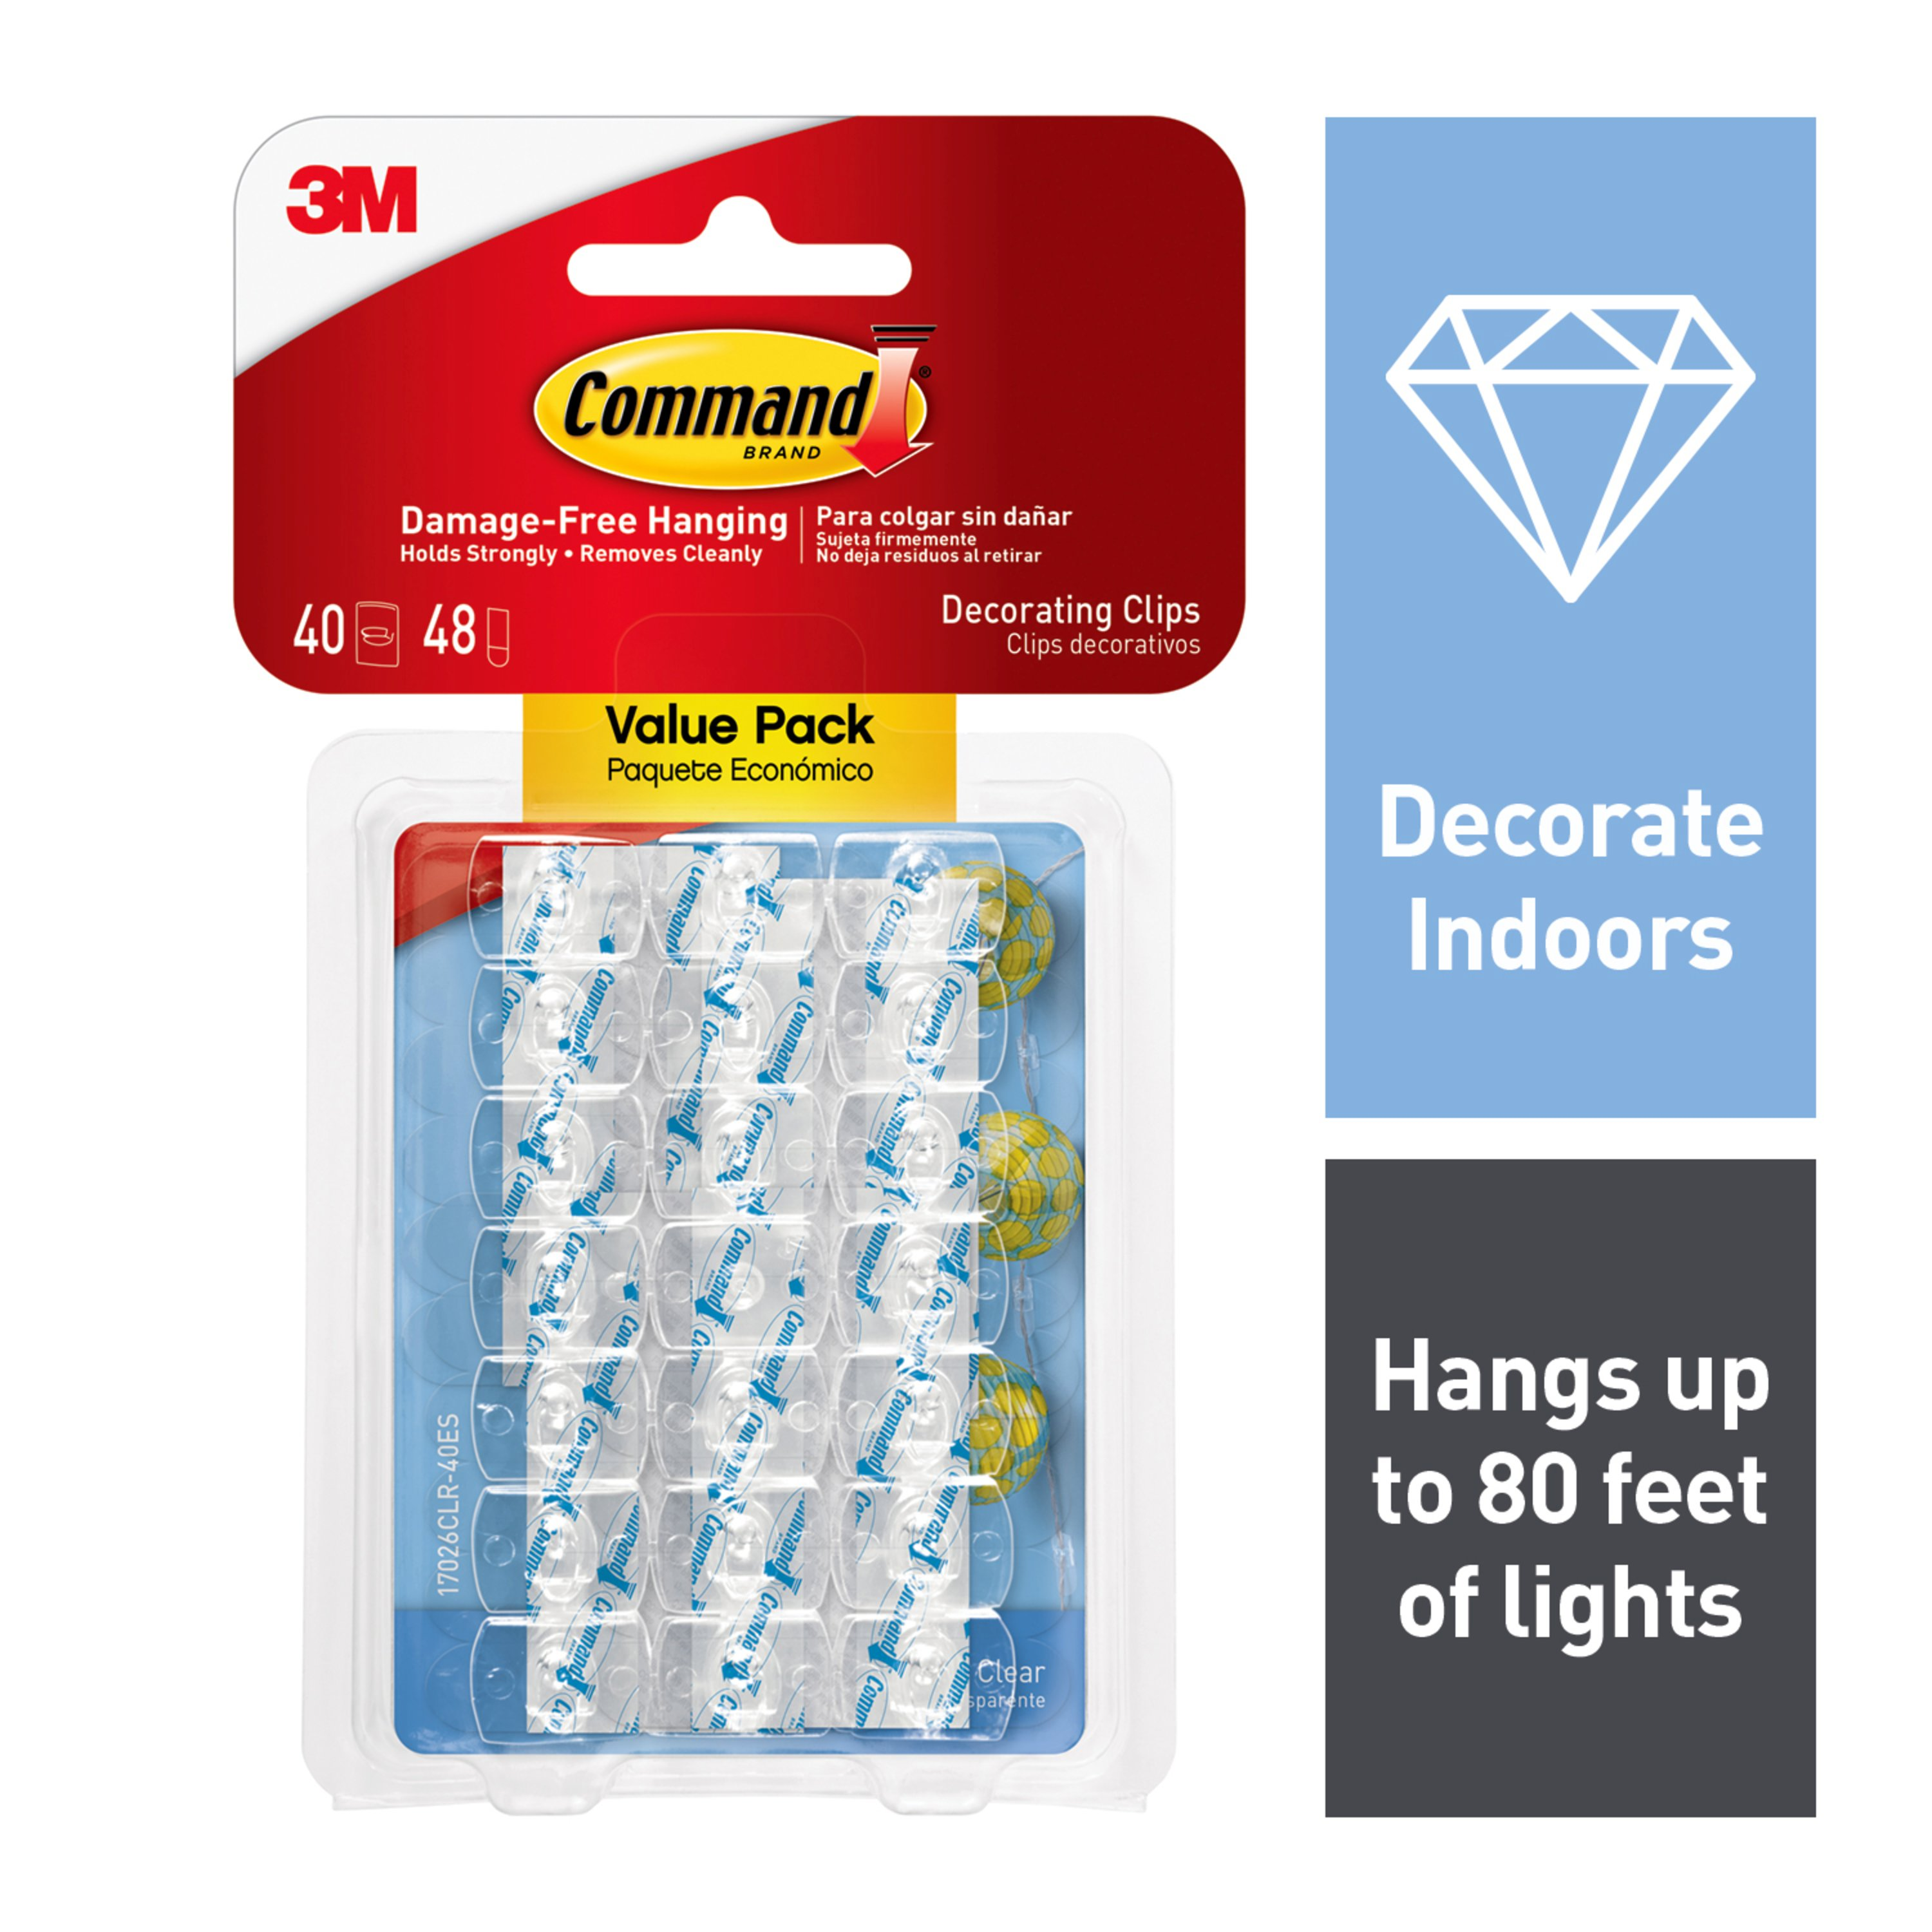 360cfb2922f Command Clear Decorating Clips Value Pack